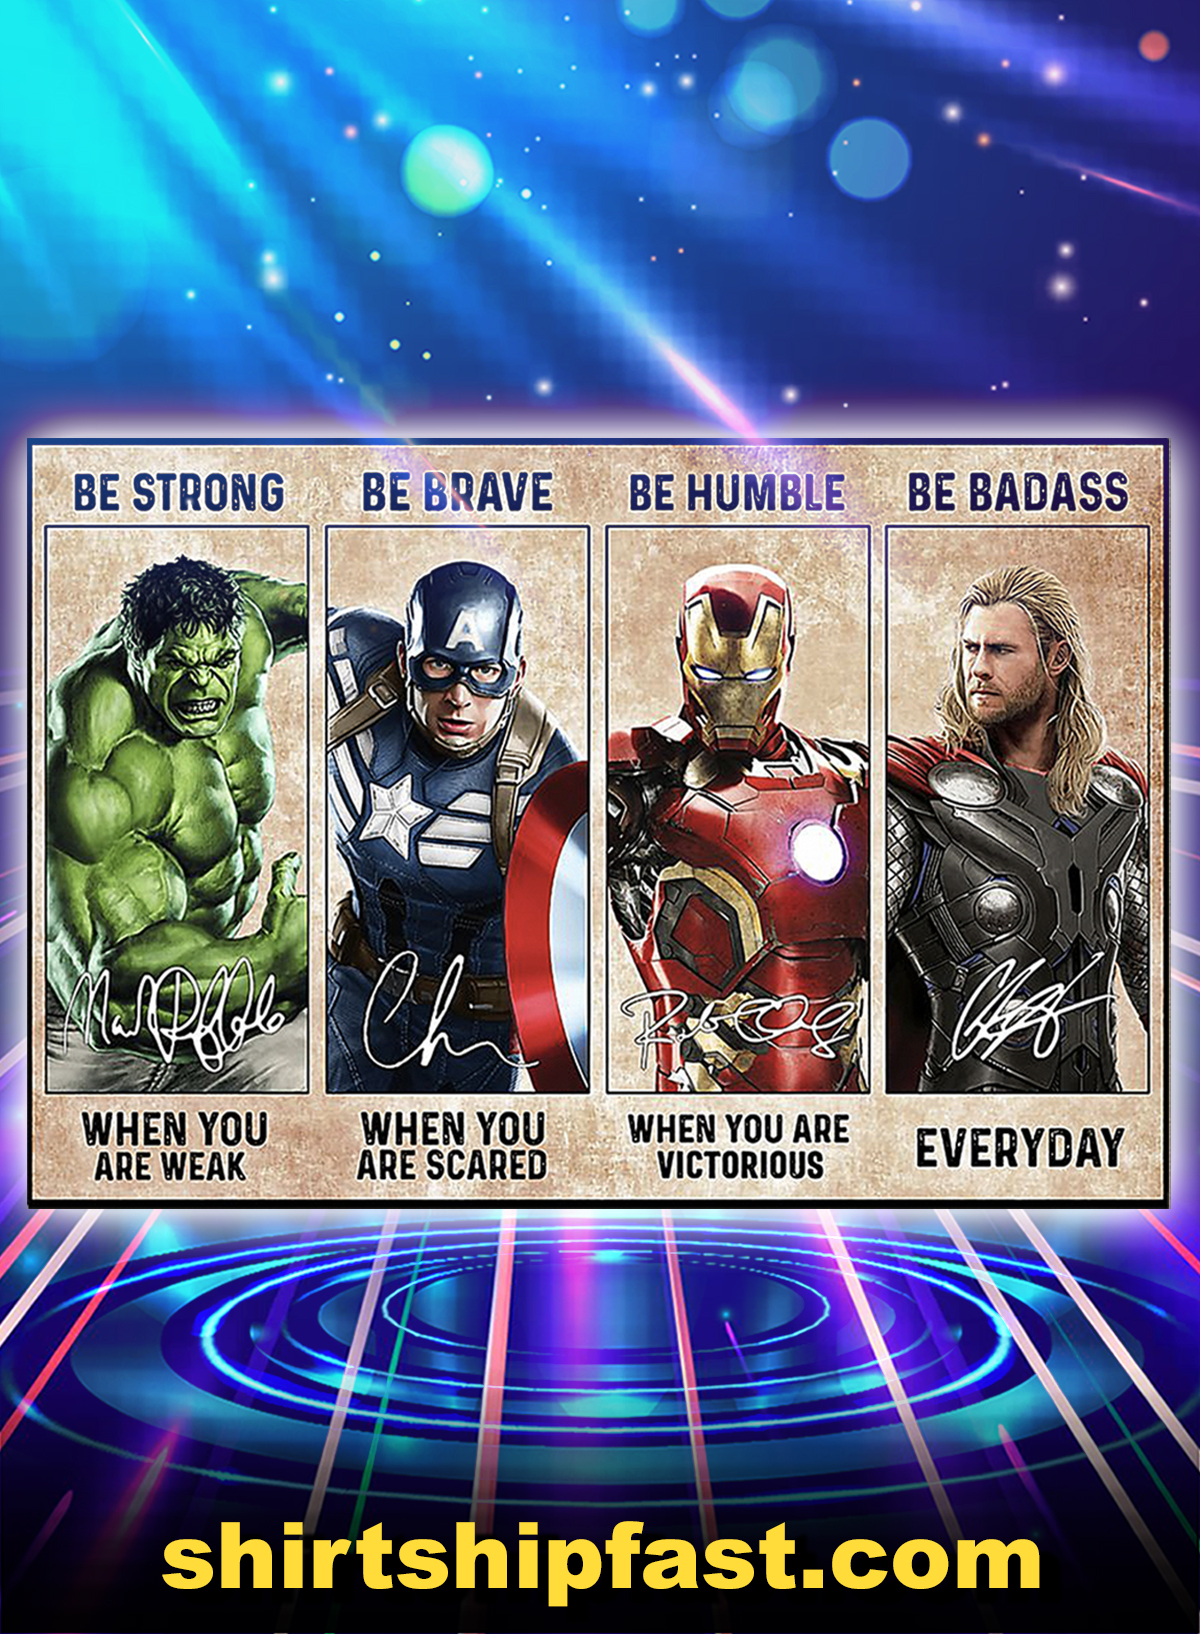 Avengers signature be strong be brave be humble be badass poster - A1